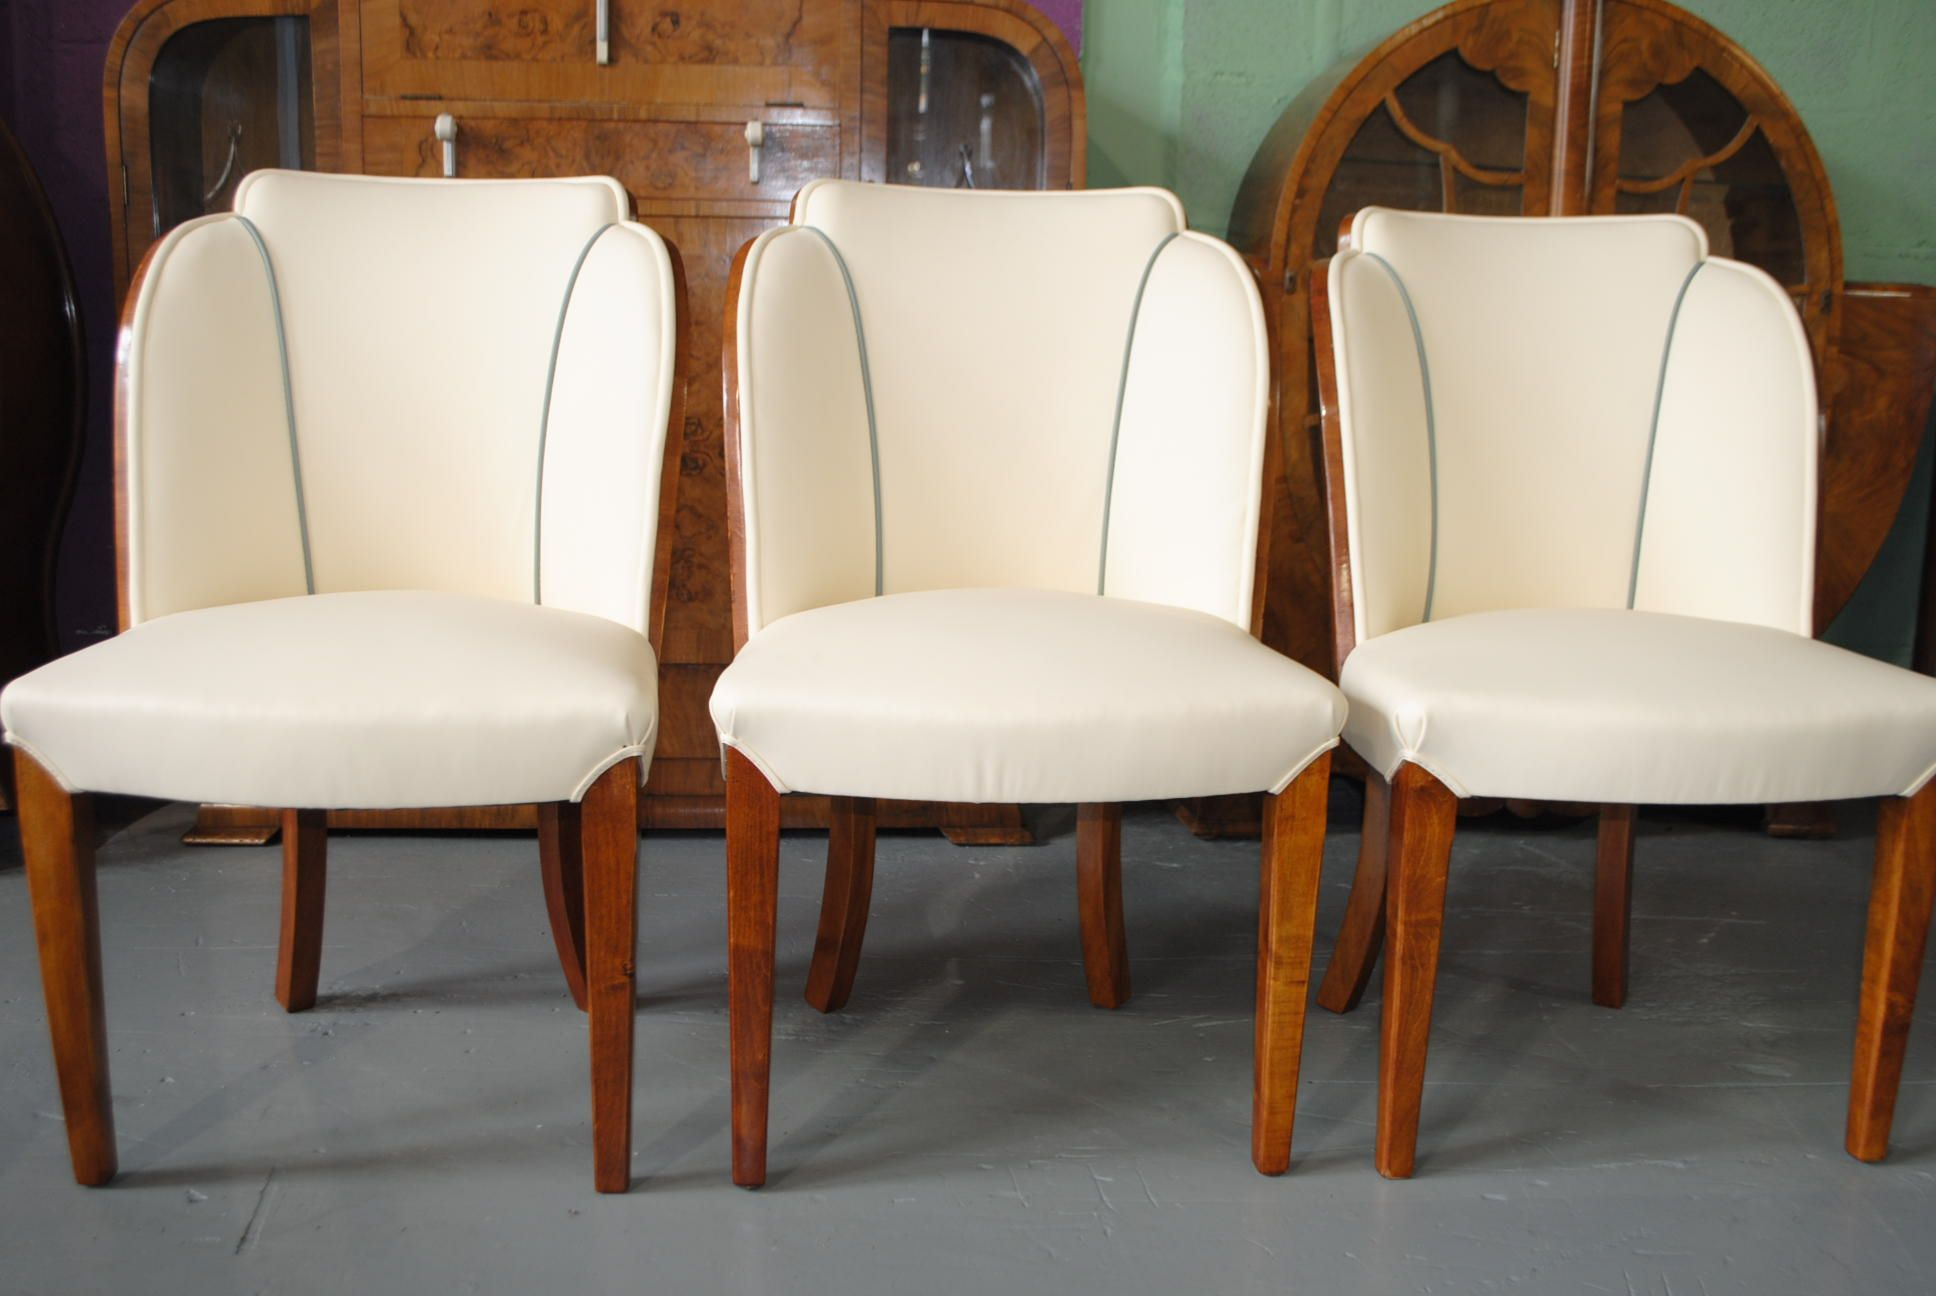 Epstein Dining Table And 6 Cloud Back Chairs In Fiddle Maple Intended For Art Deco Room Furniture